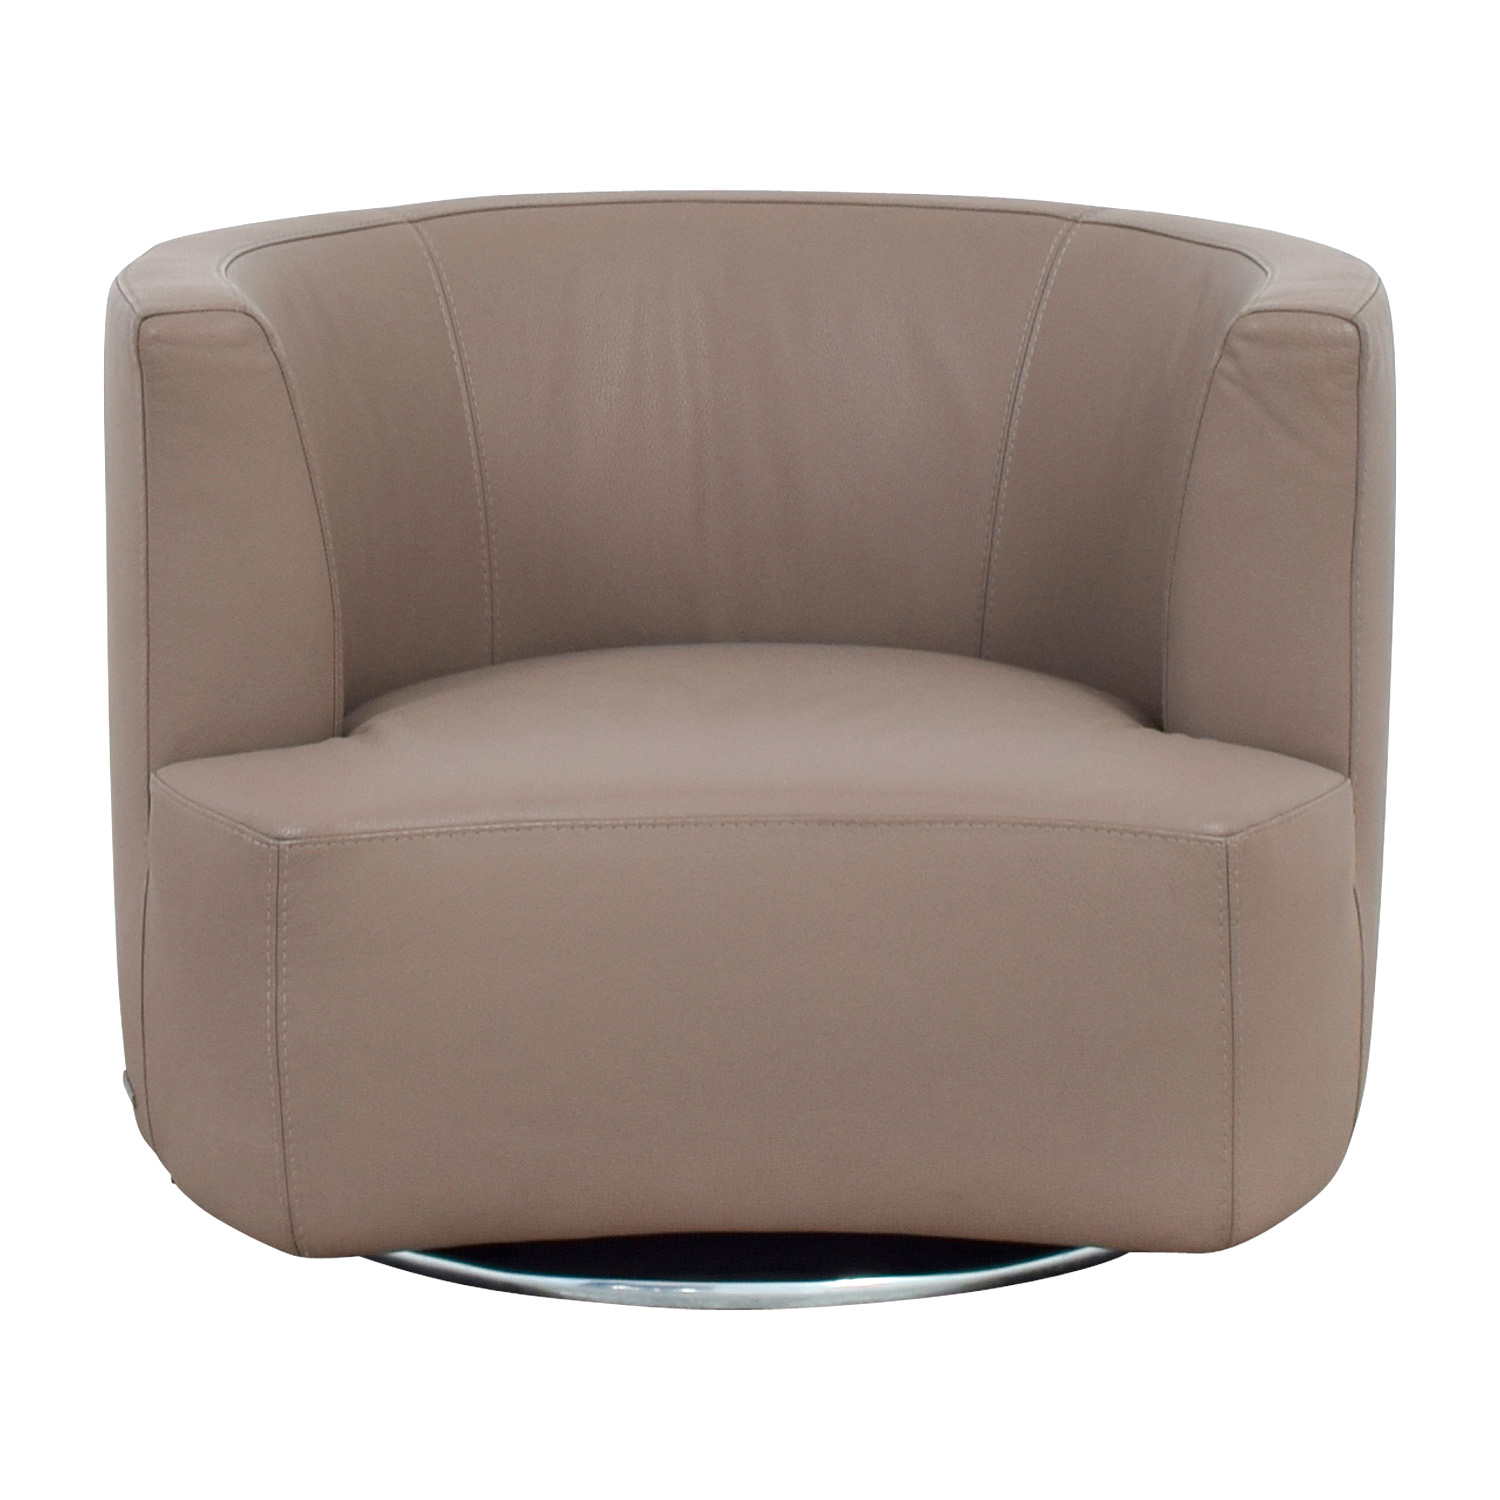 Fantastic 84 Off Roche Bobois Roche Bobois Tan Leather Swivel Chair Chairs Cjindustries Chair Design For Home Cjindustriesco